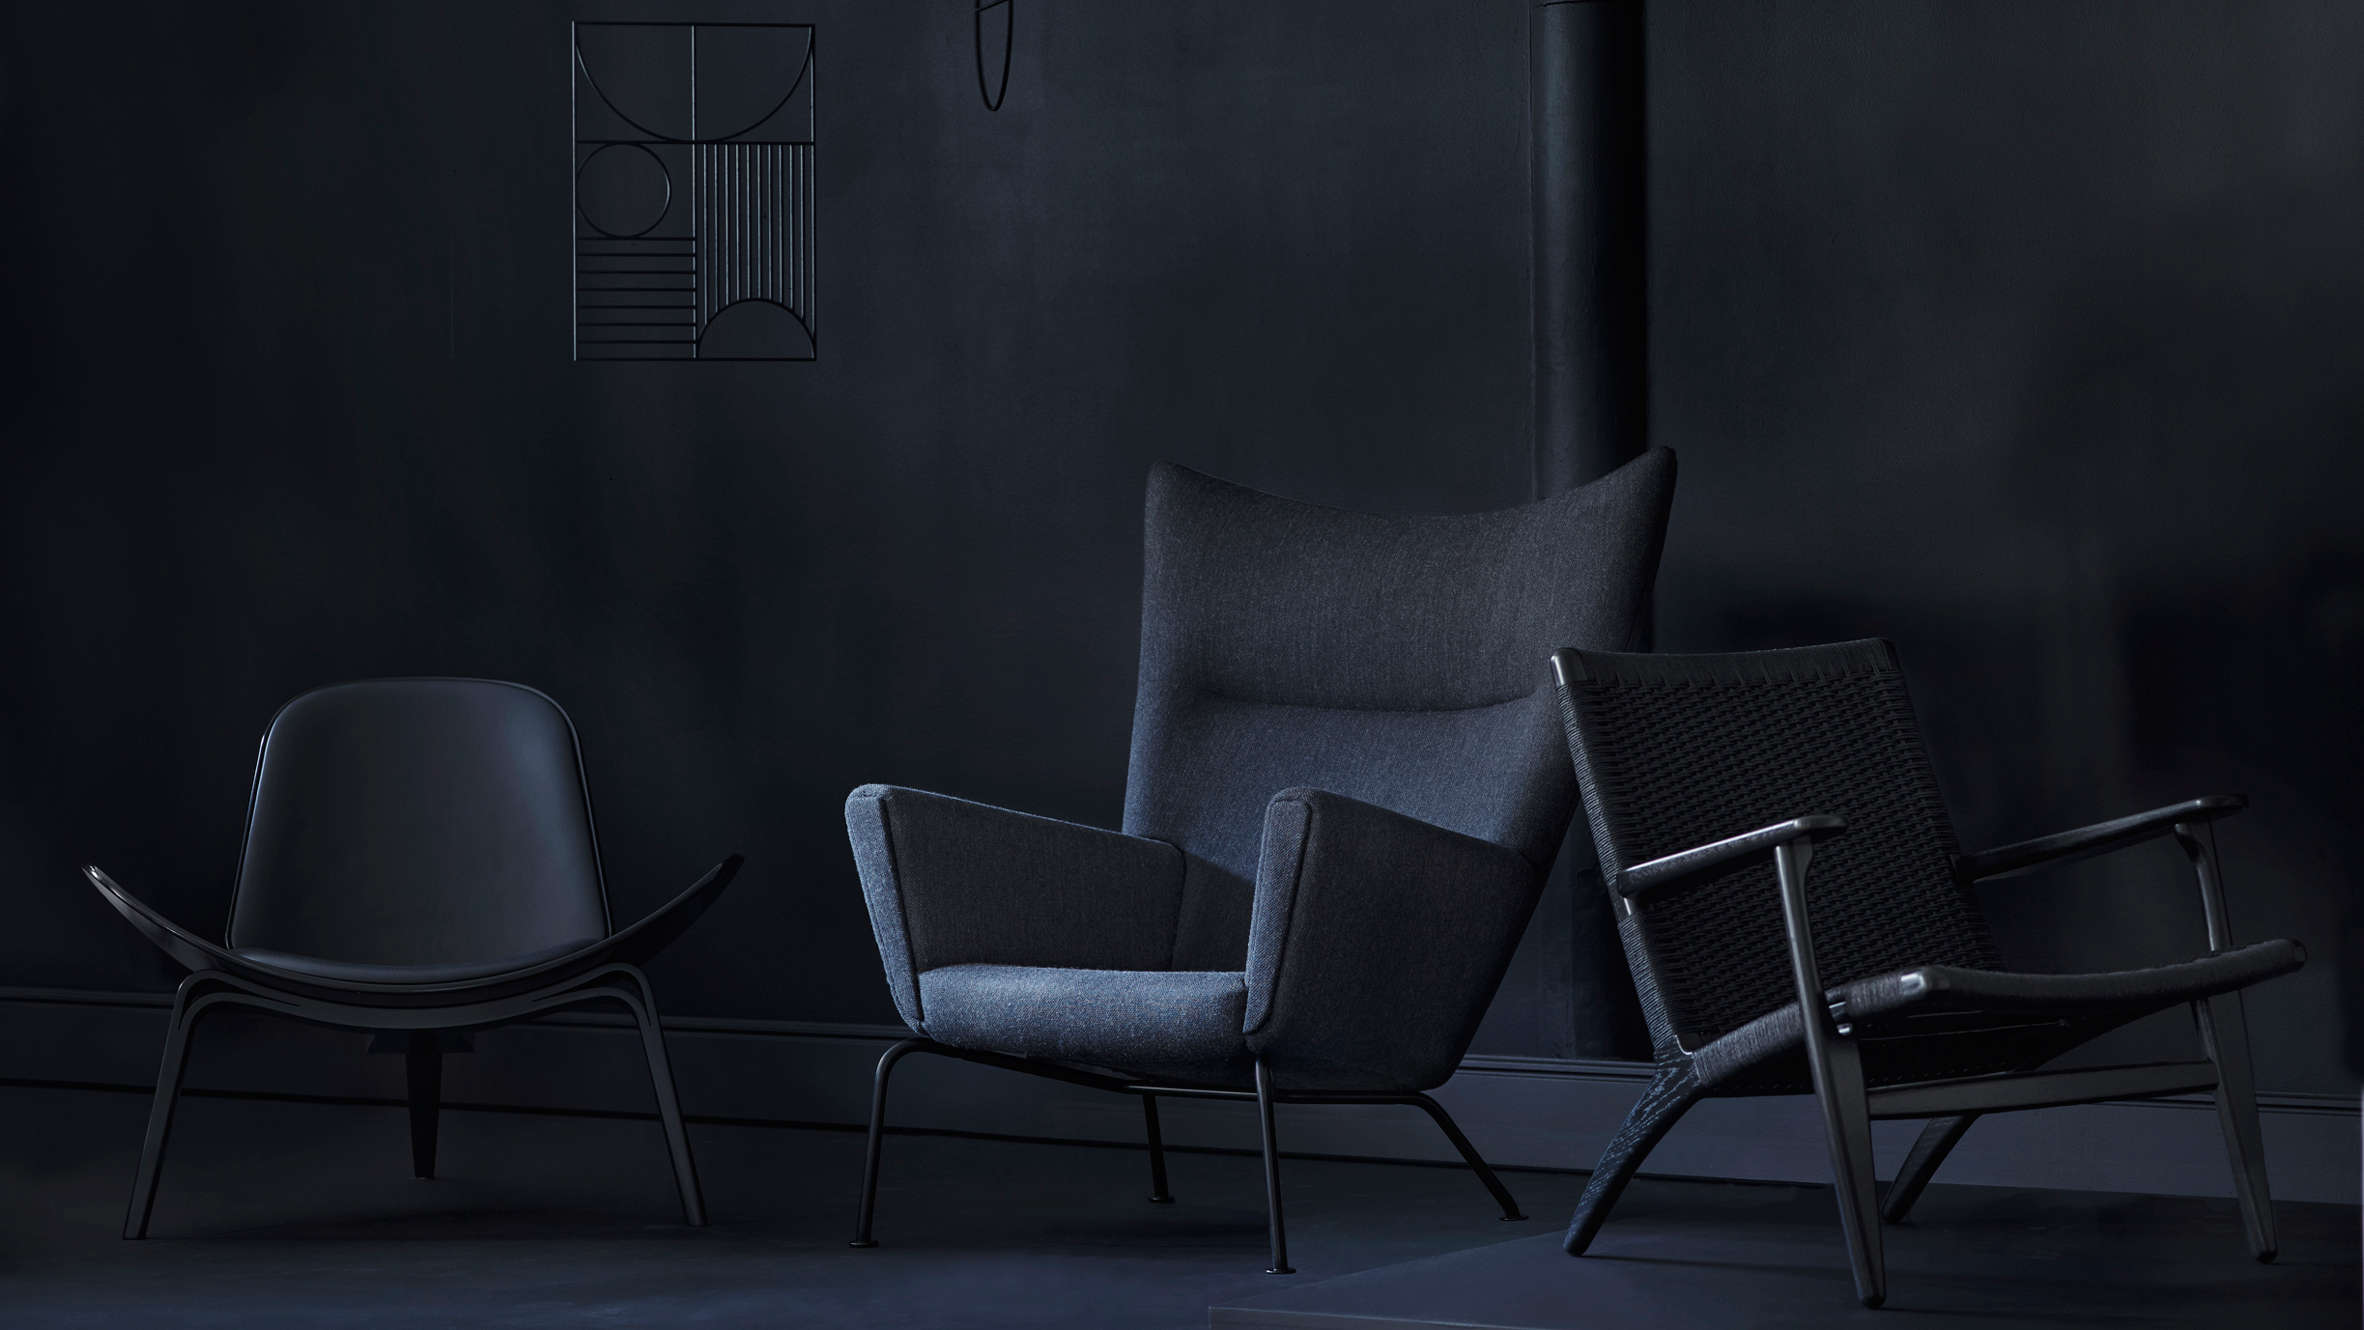 wing-and-oculus-chairs-carl-hansen-black-edition